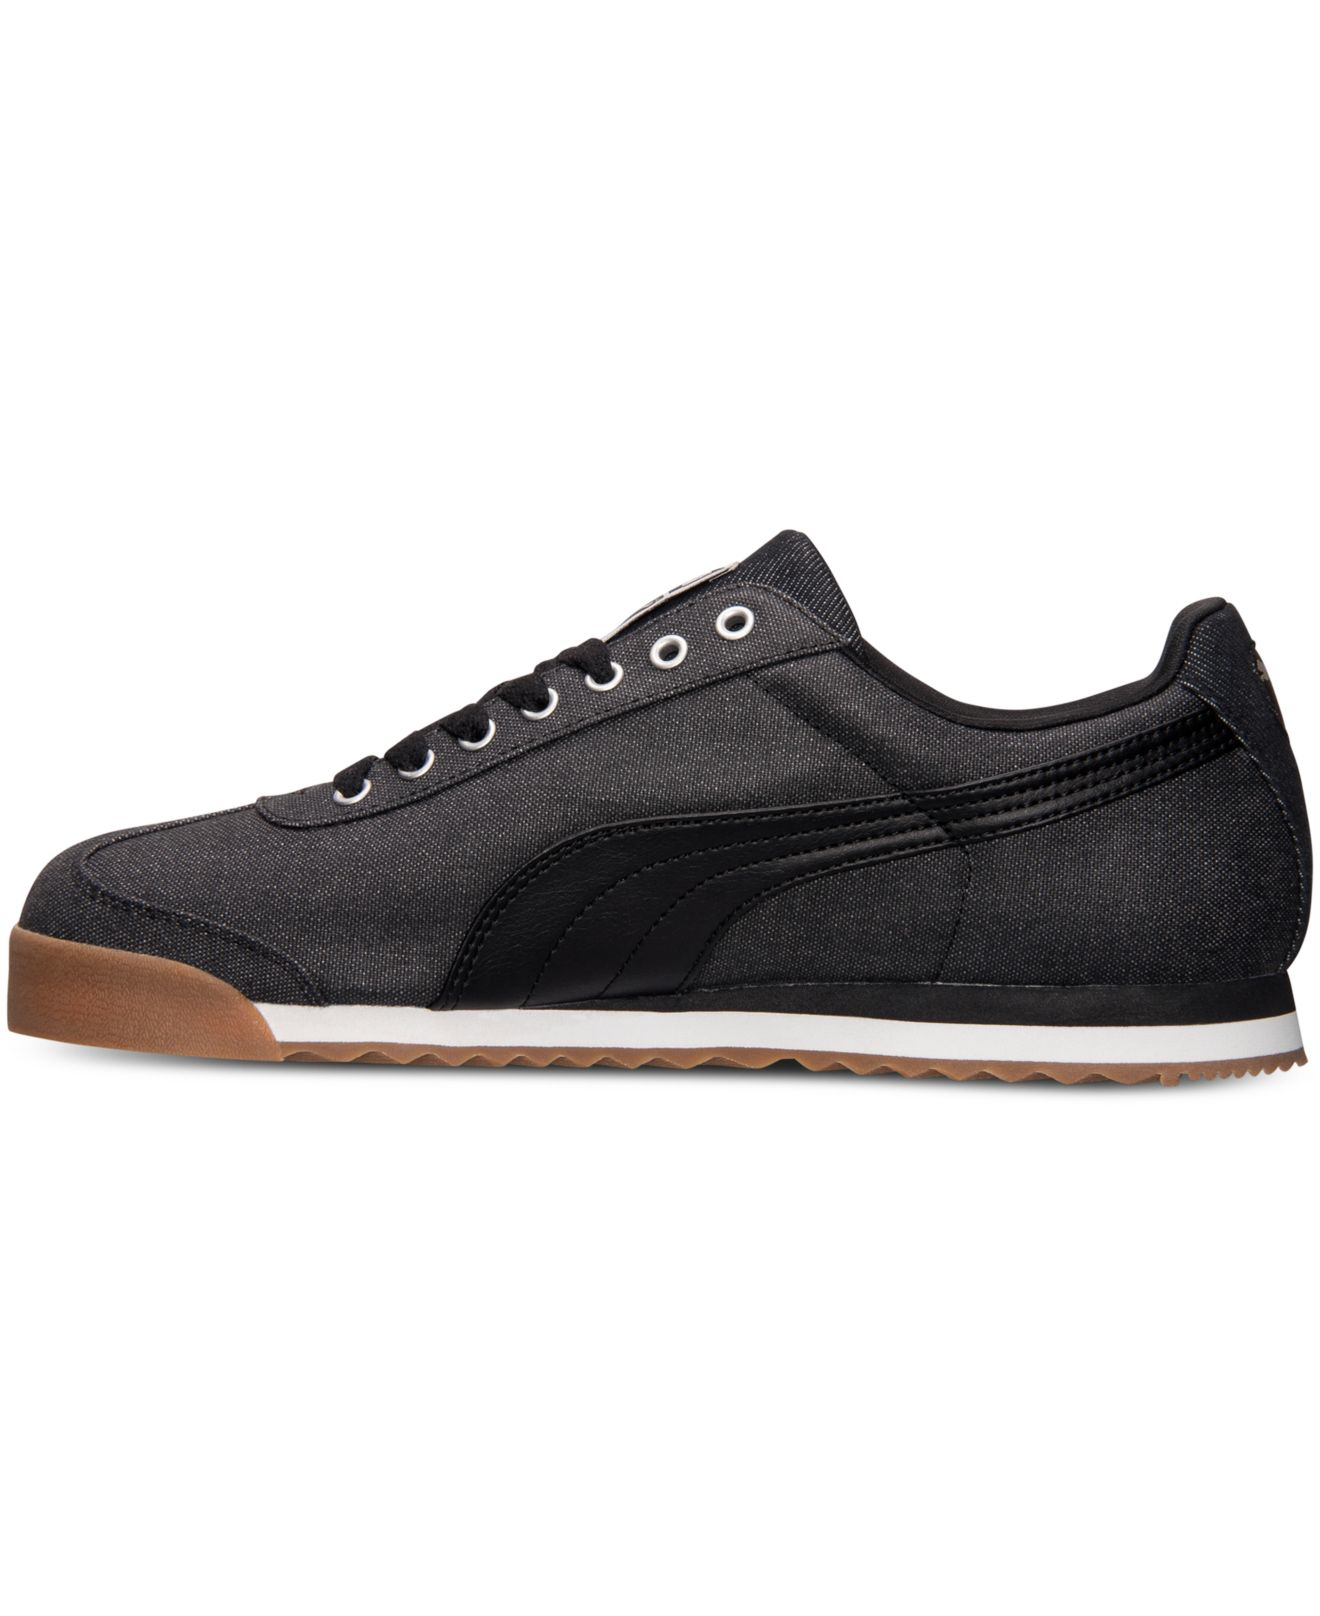 Citi Trends Mens Shoes